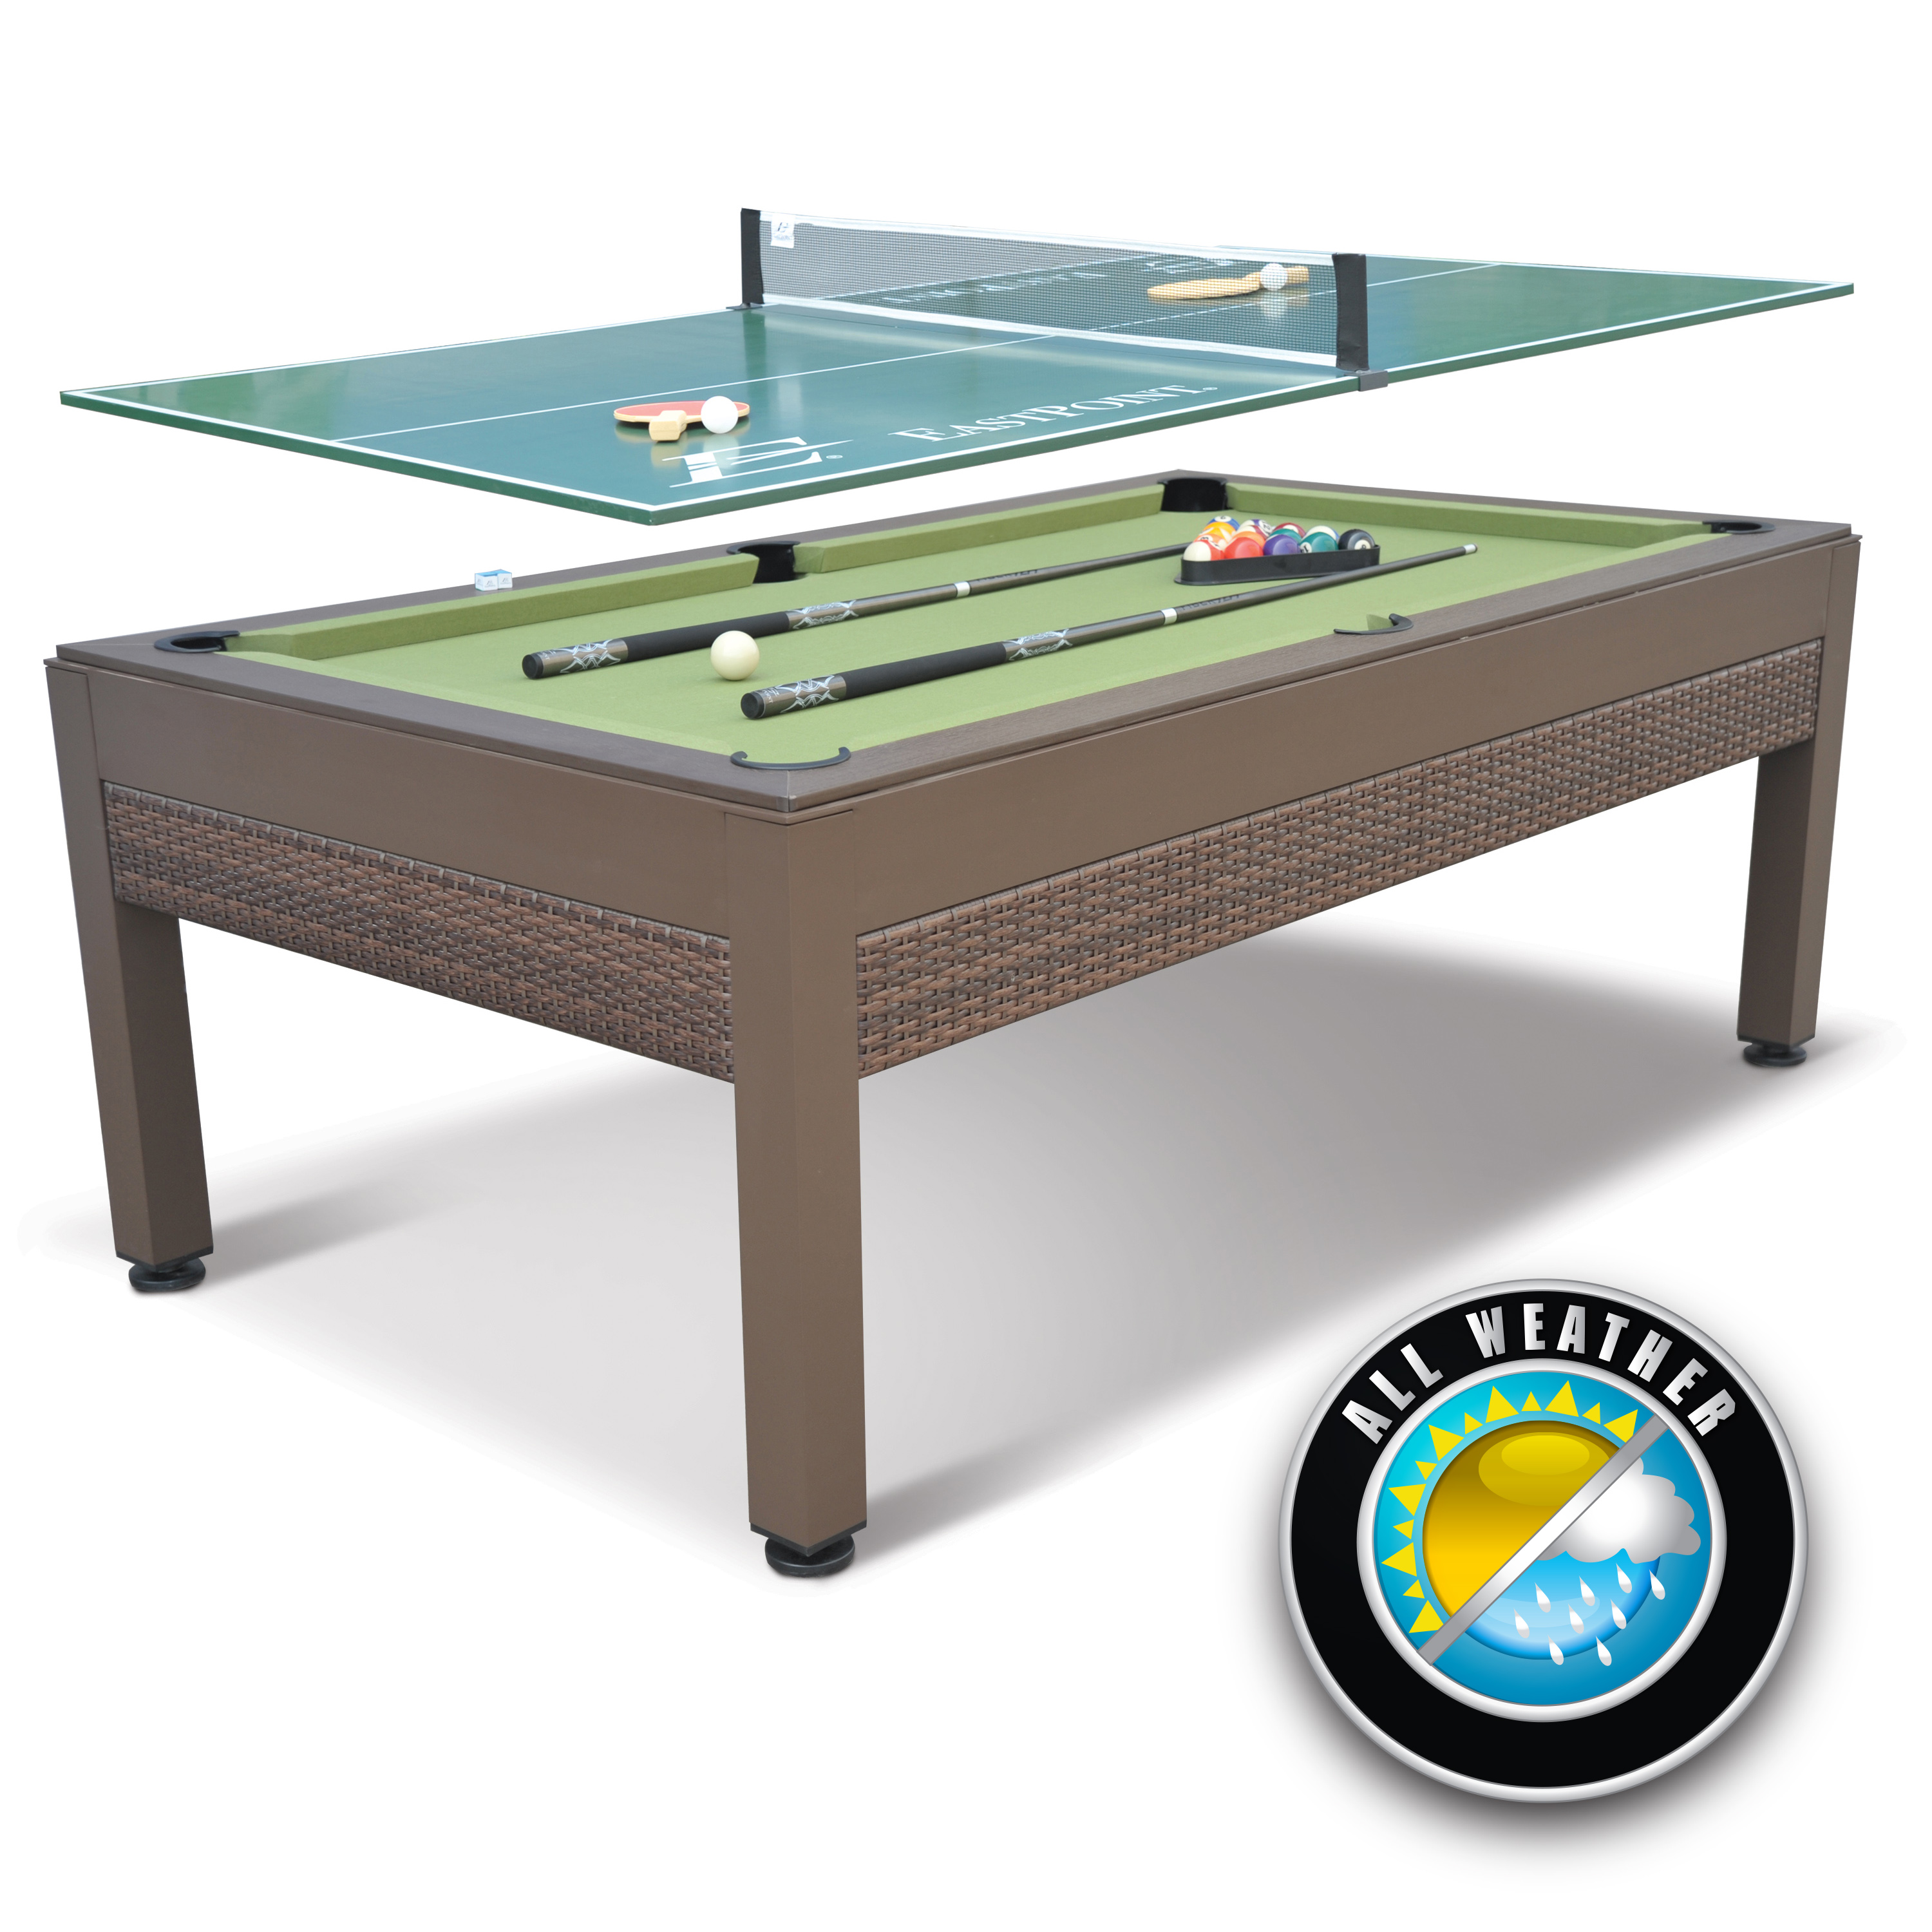 eastpoint sports outdoor billiard pool table with tennis side canadian tire top wicker martel accent console decor ideas cherry wood end tables living room grey gloss nest gold